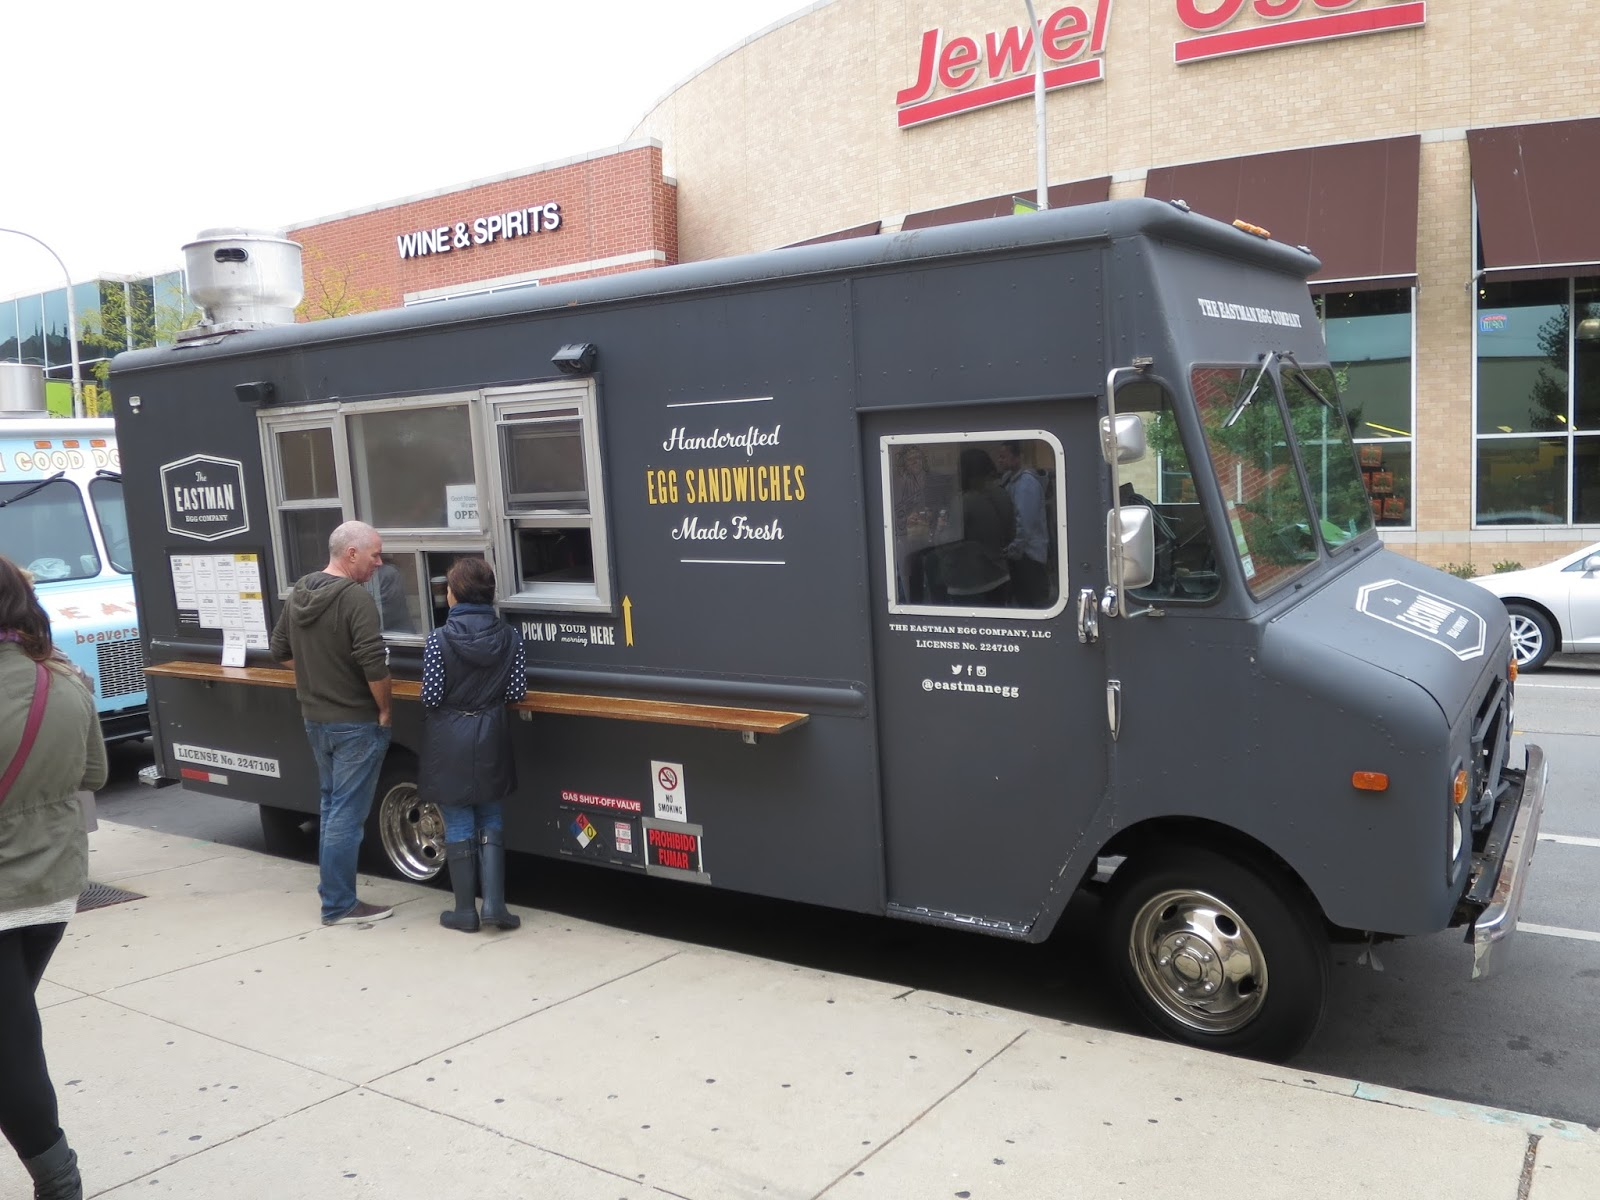 Food Truck Parked Nearby You Know Because If There Were No Trucks Where People Could Eat A Quick Cheap Snack At Then Theyd Go Get 28 Oz Bone In Ribeye